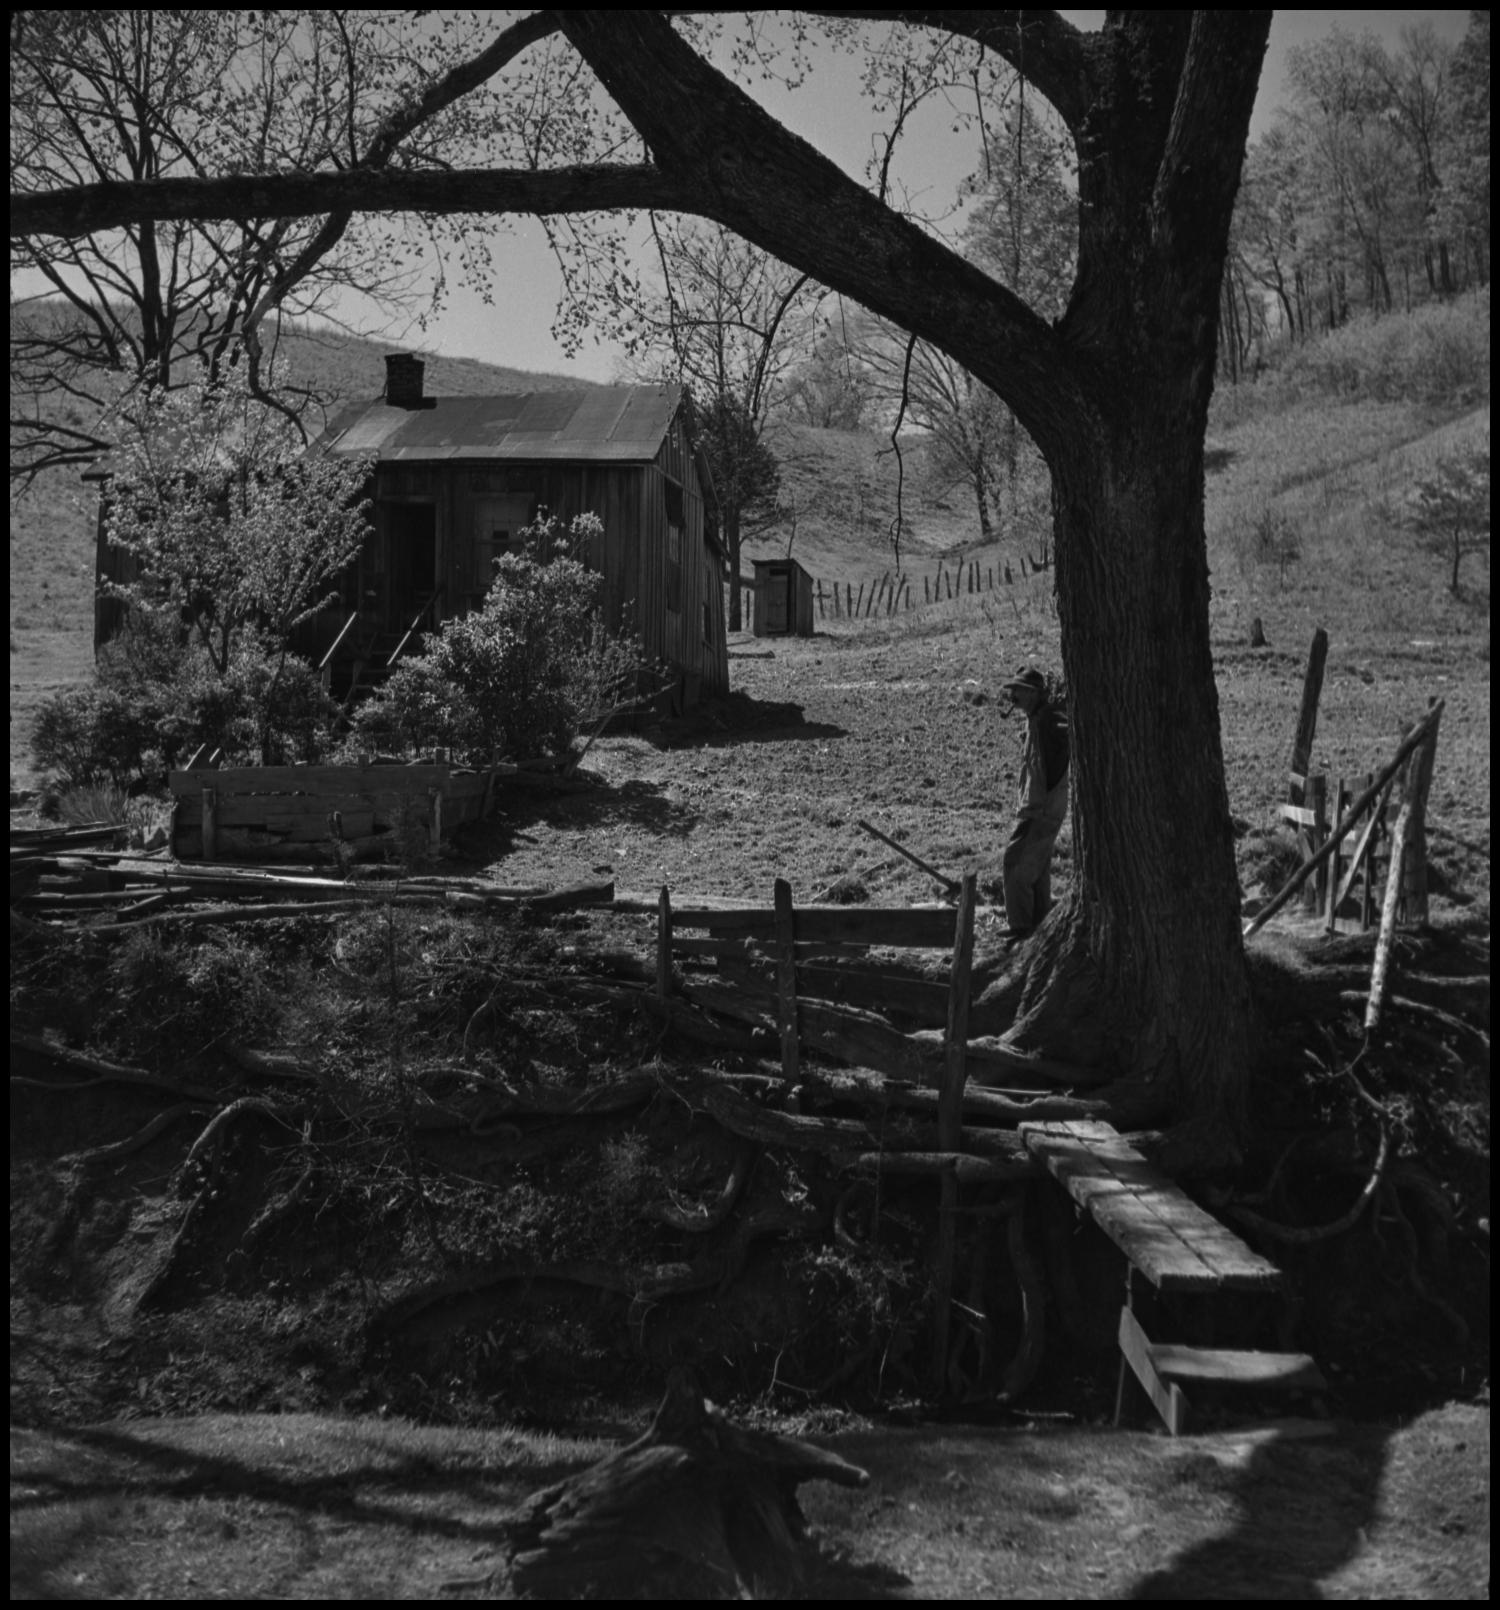 [Farm house scene], Photograph of a man leaning against a tree. The tree is on the bank of a small creek. There is a make shift bridge crossing the creek. There is a farm house as well as an outhouse in the background of the photograph.,